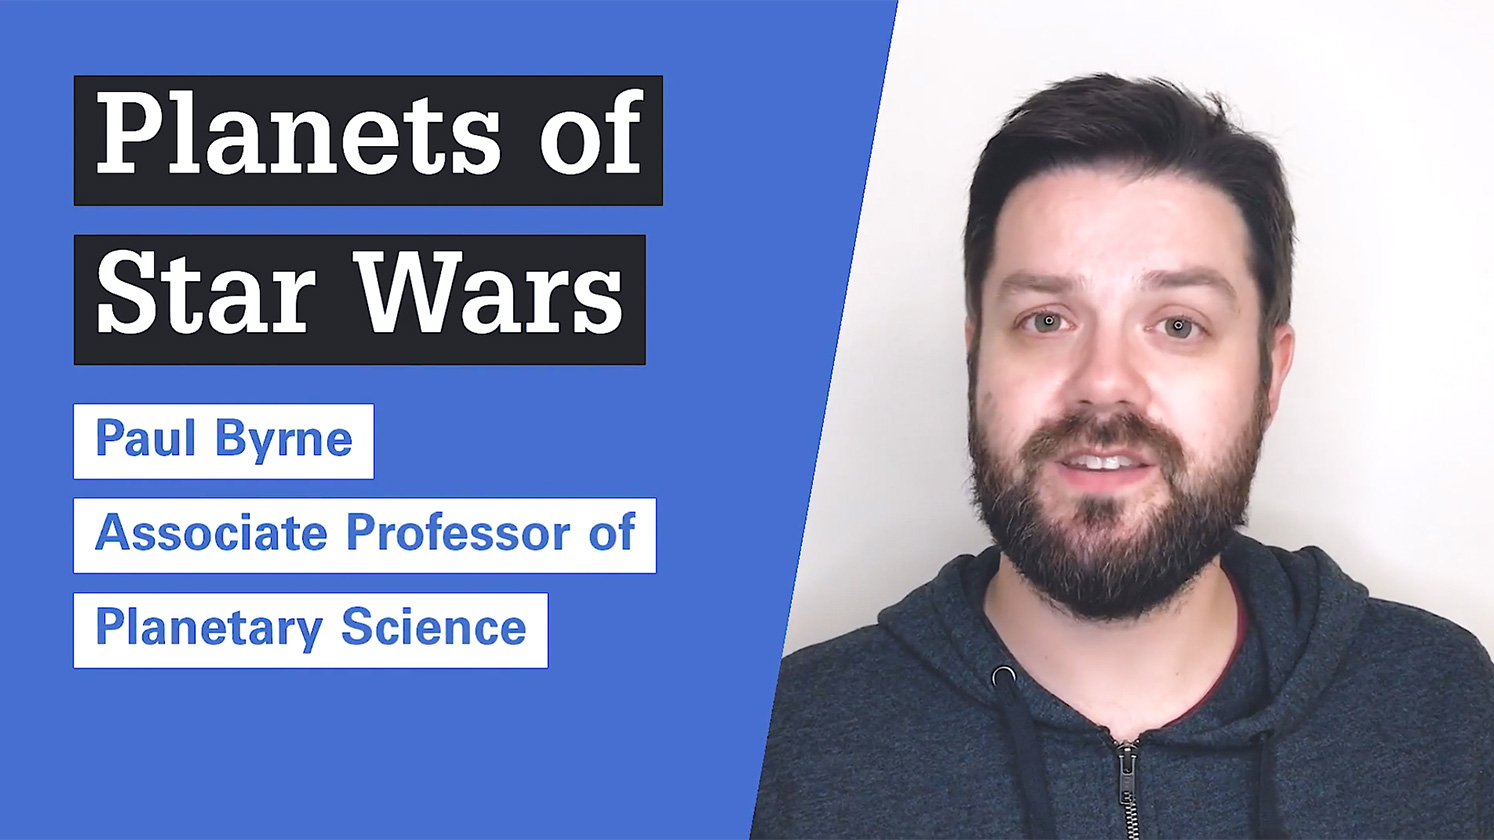 Paul Byrne, associate professor of planetary science, talks about planets of Star Wars